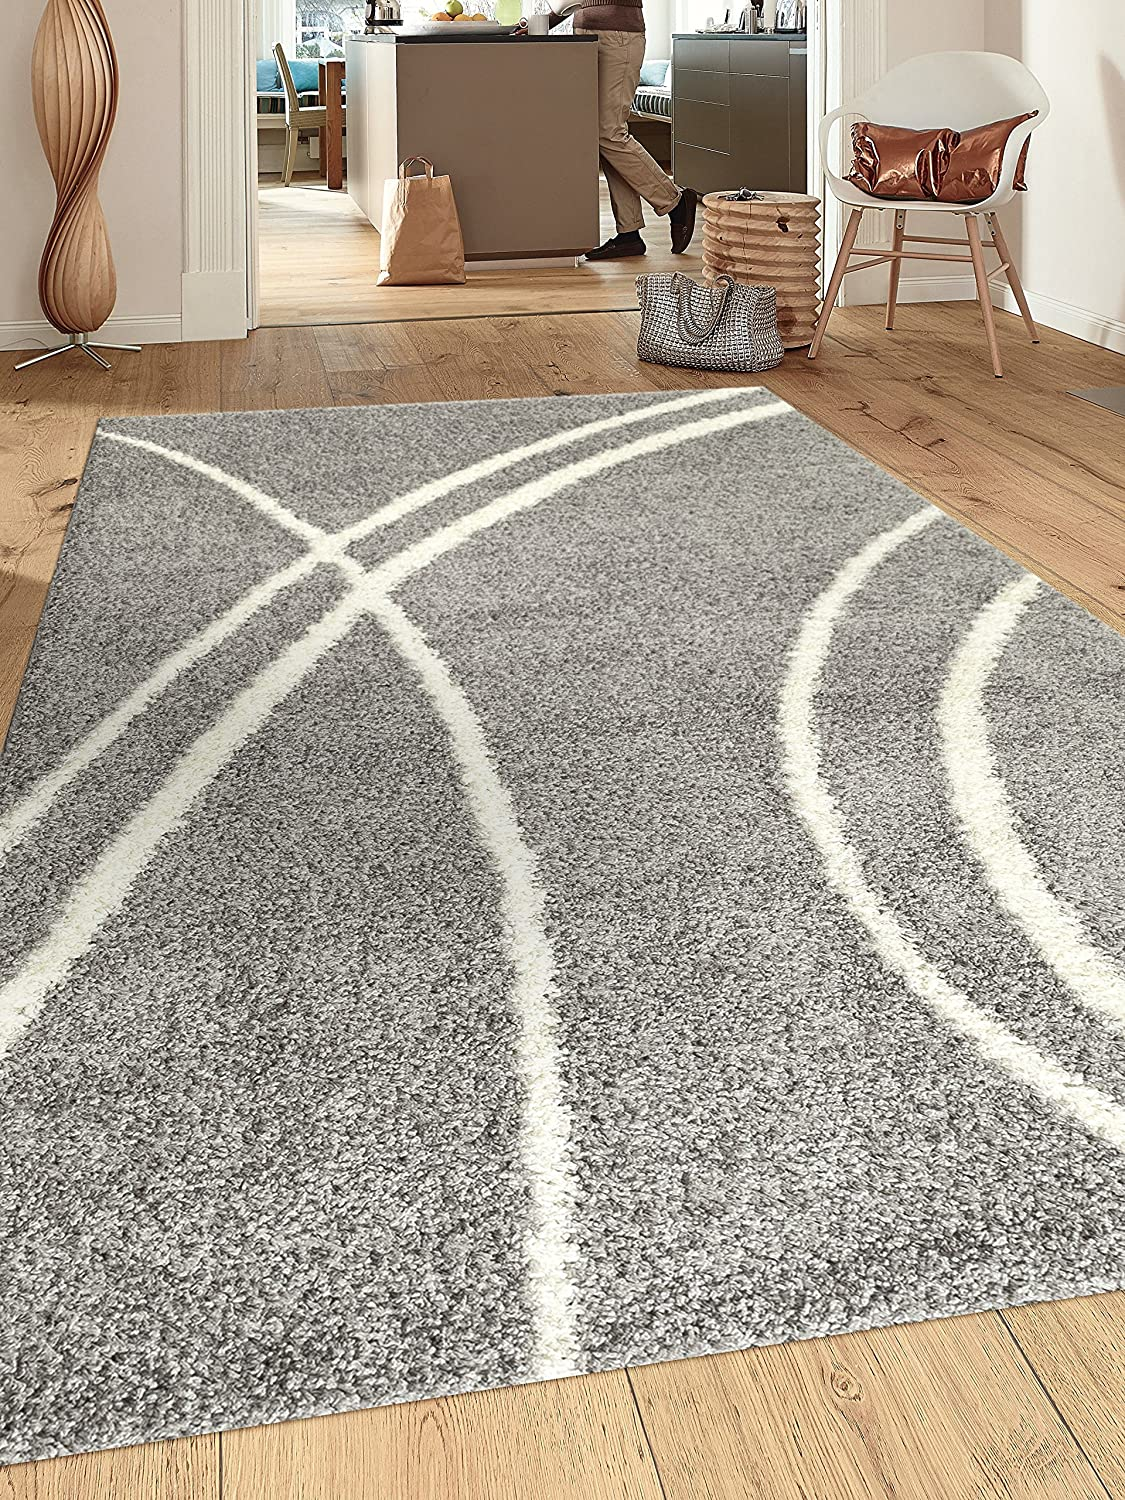 "Cozy Contemporary Stripe L.Grey-White 3'3"" X 5' Indoor Shag Area Rug"